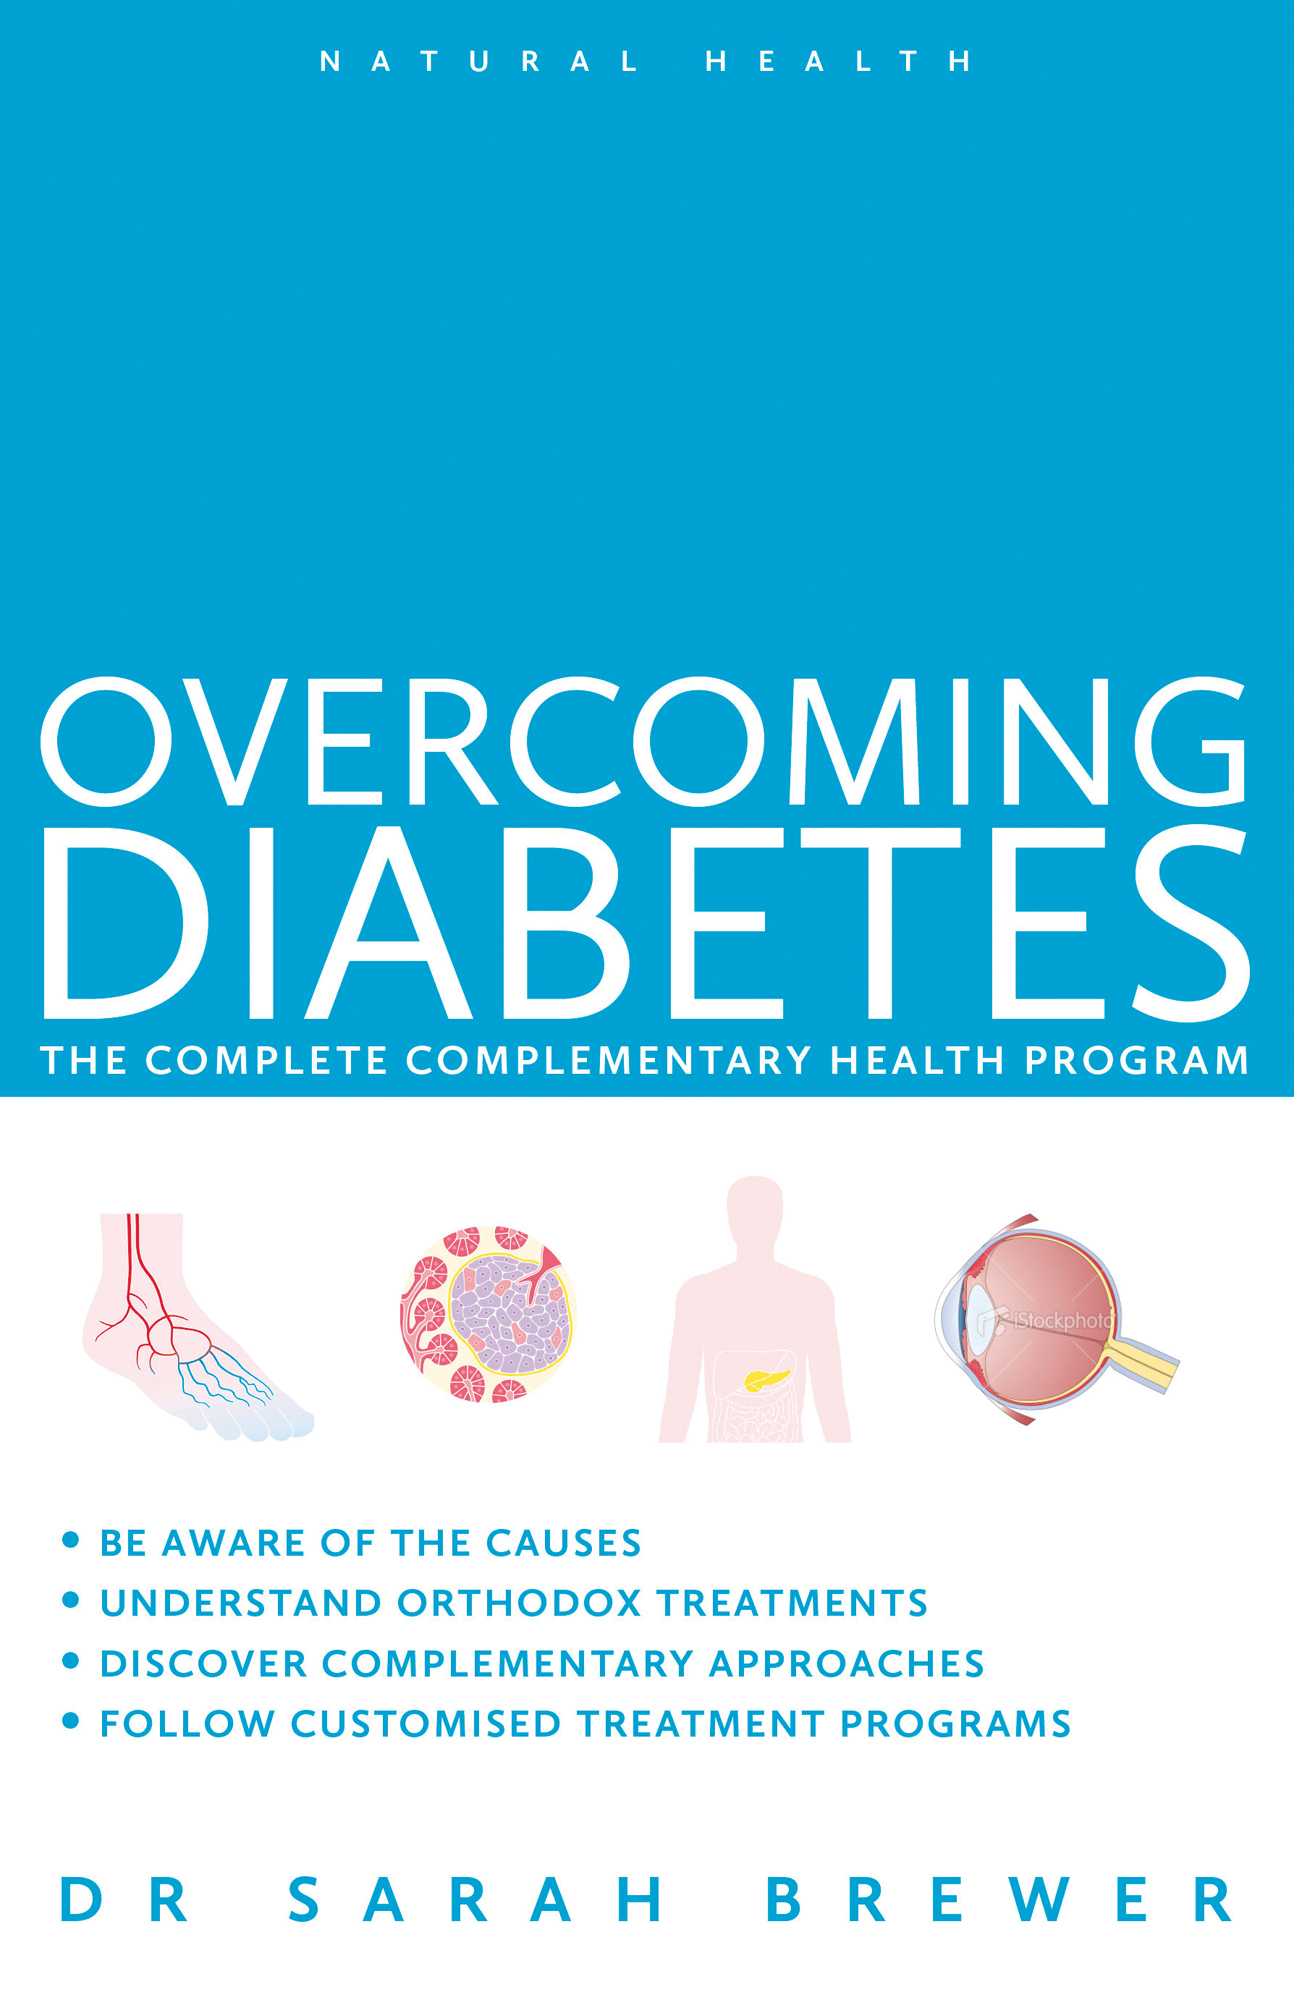 Overcoming Diabetes: The Complete Complementary Health Program